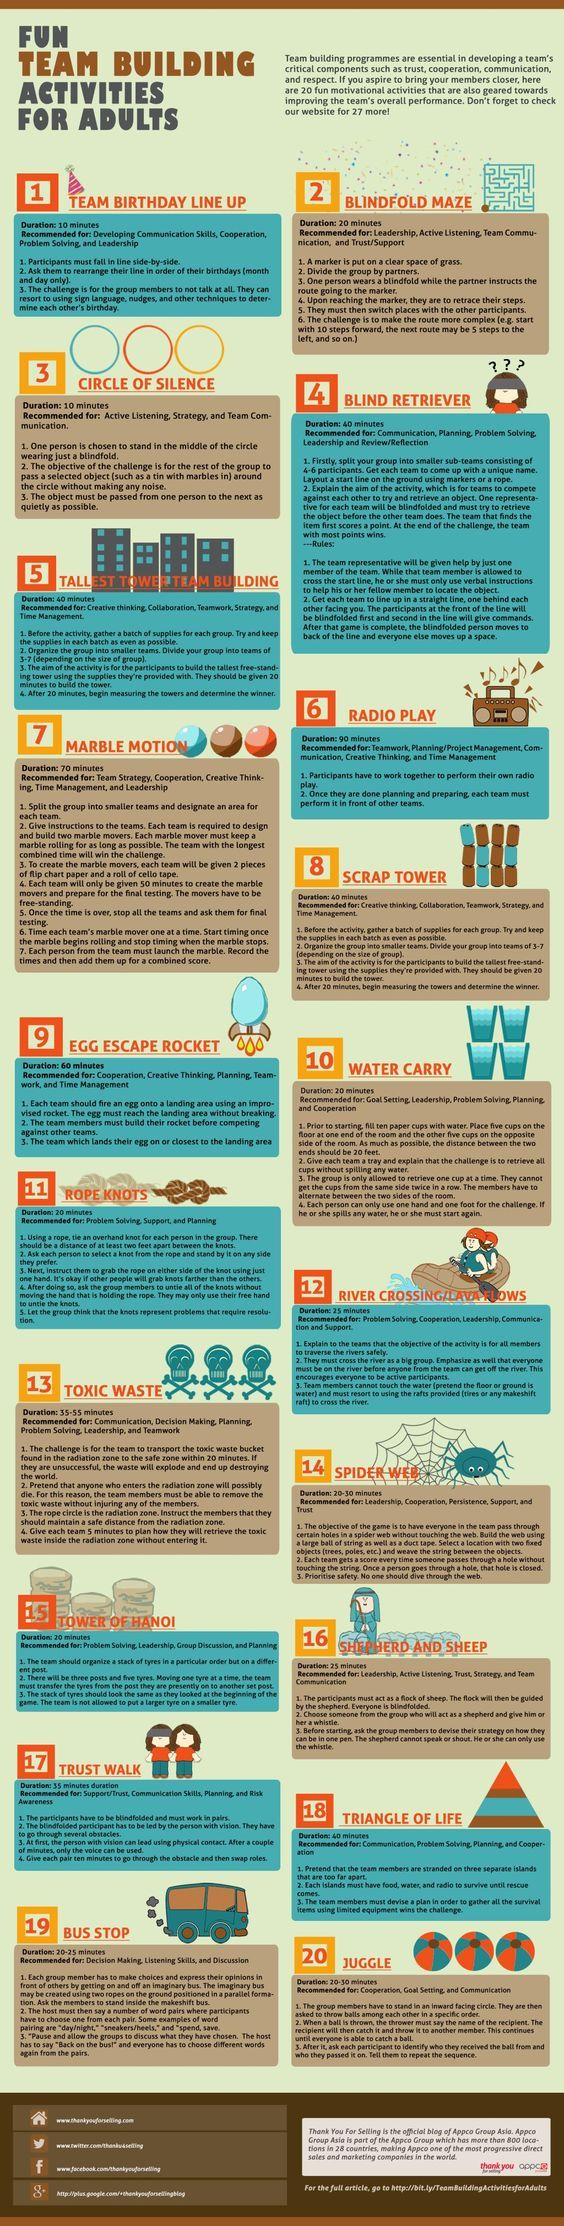 839 best images about Teambuilding Activities on Pinterest | Group ...